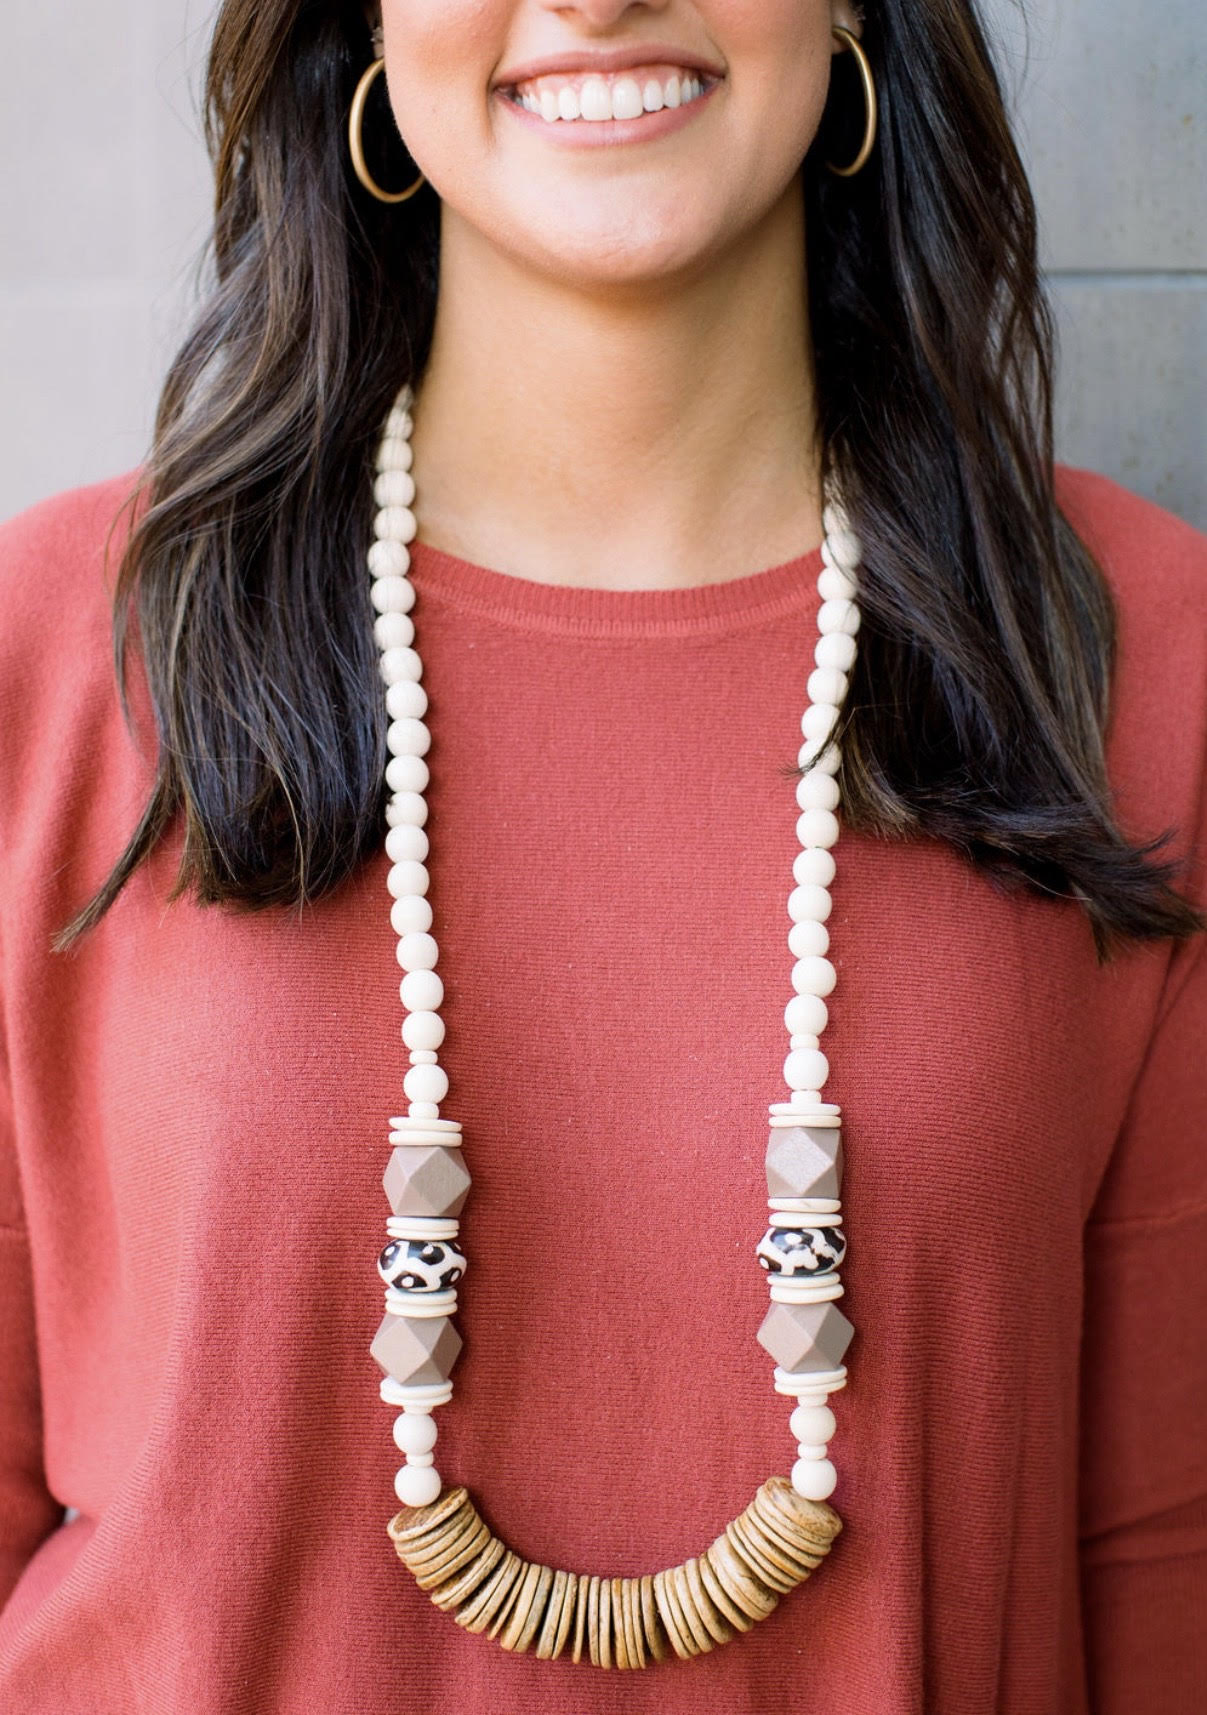 Carolina Strung Necklace - The Clara